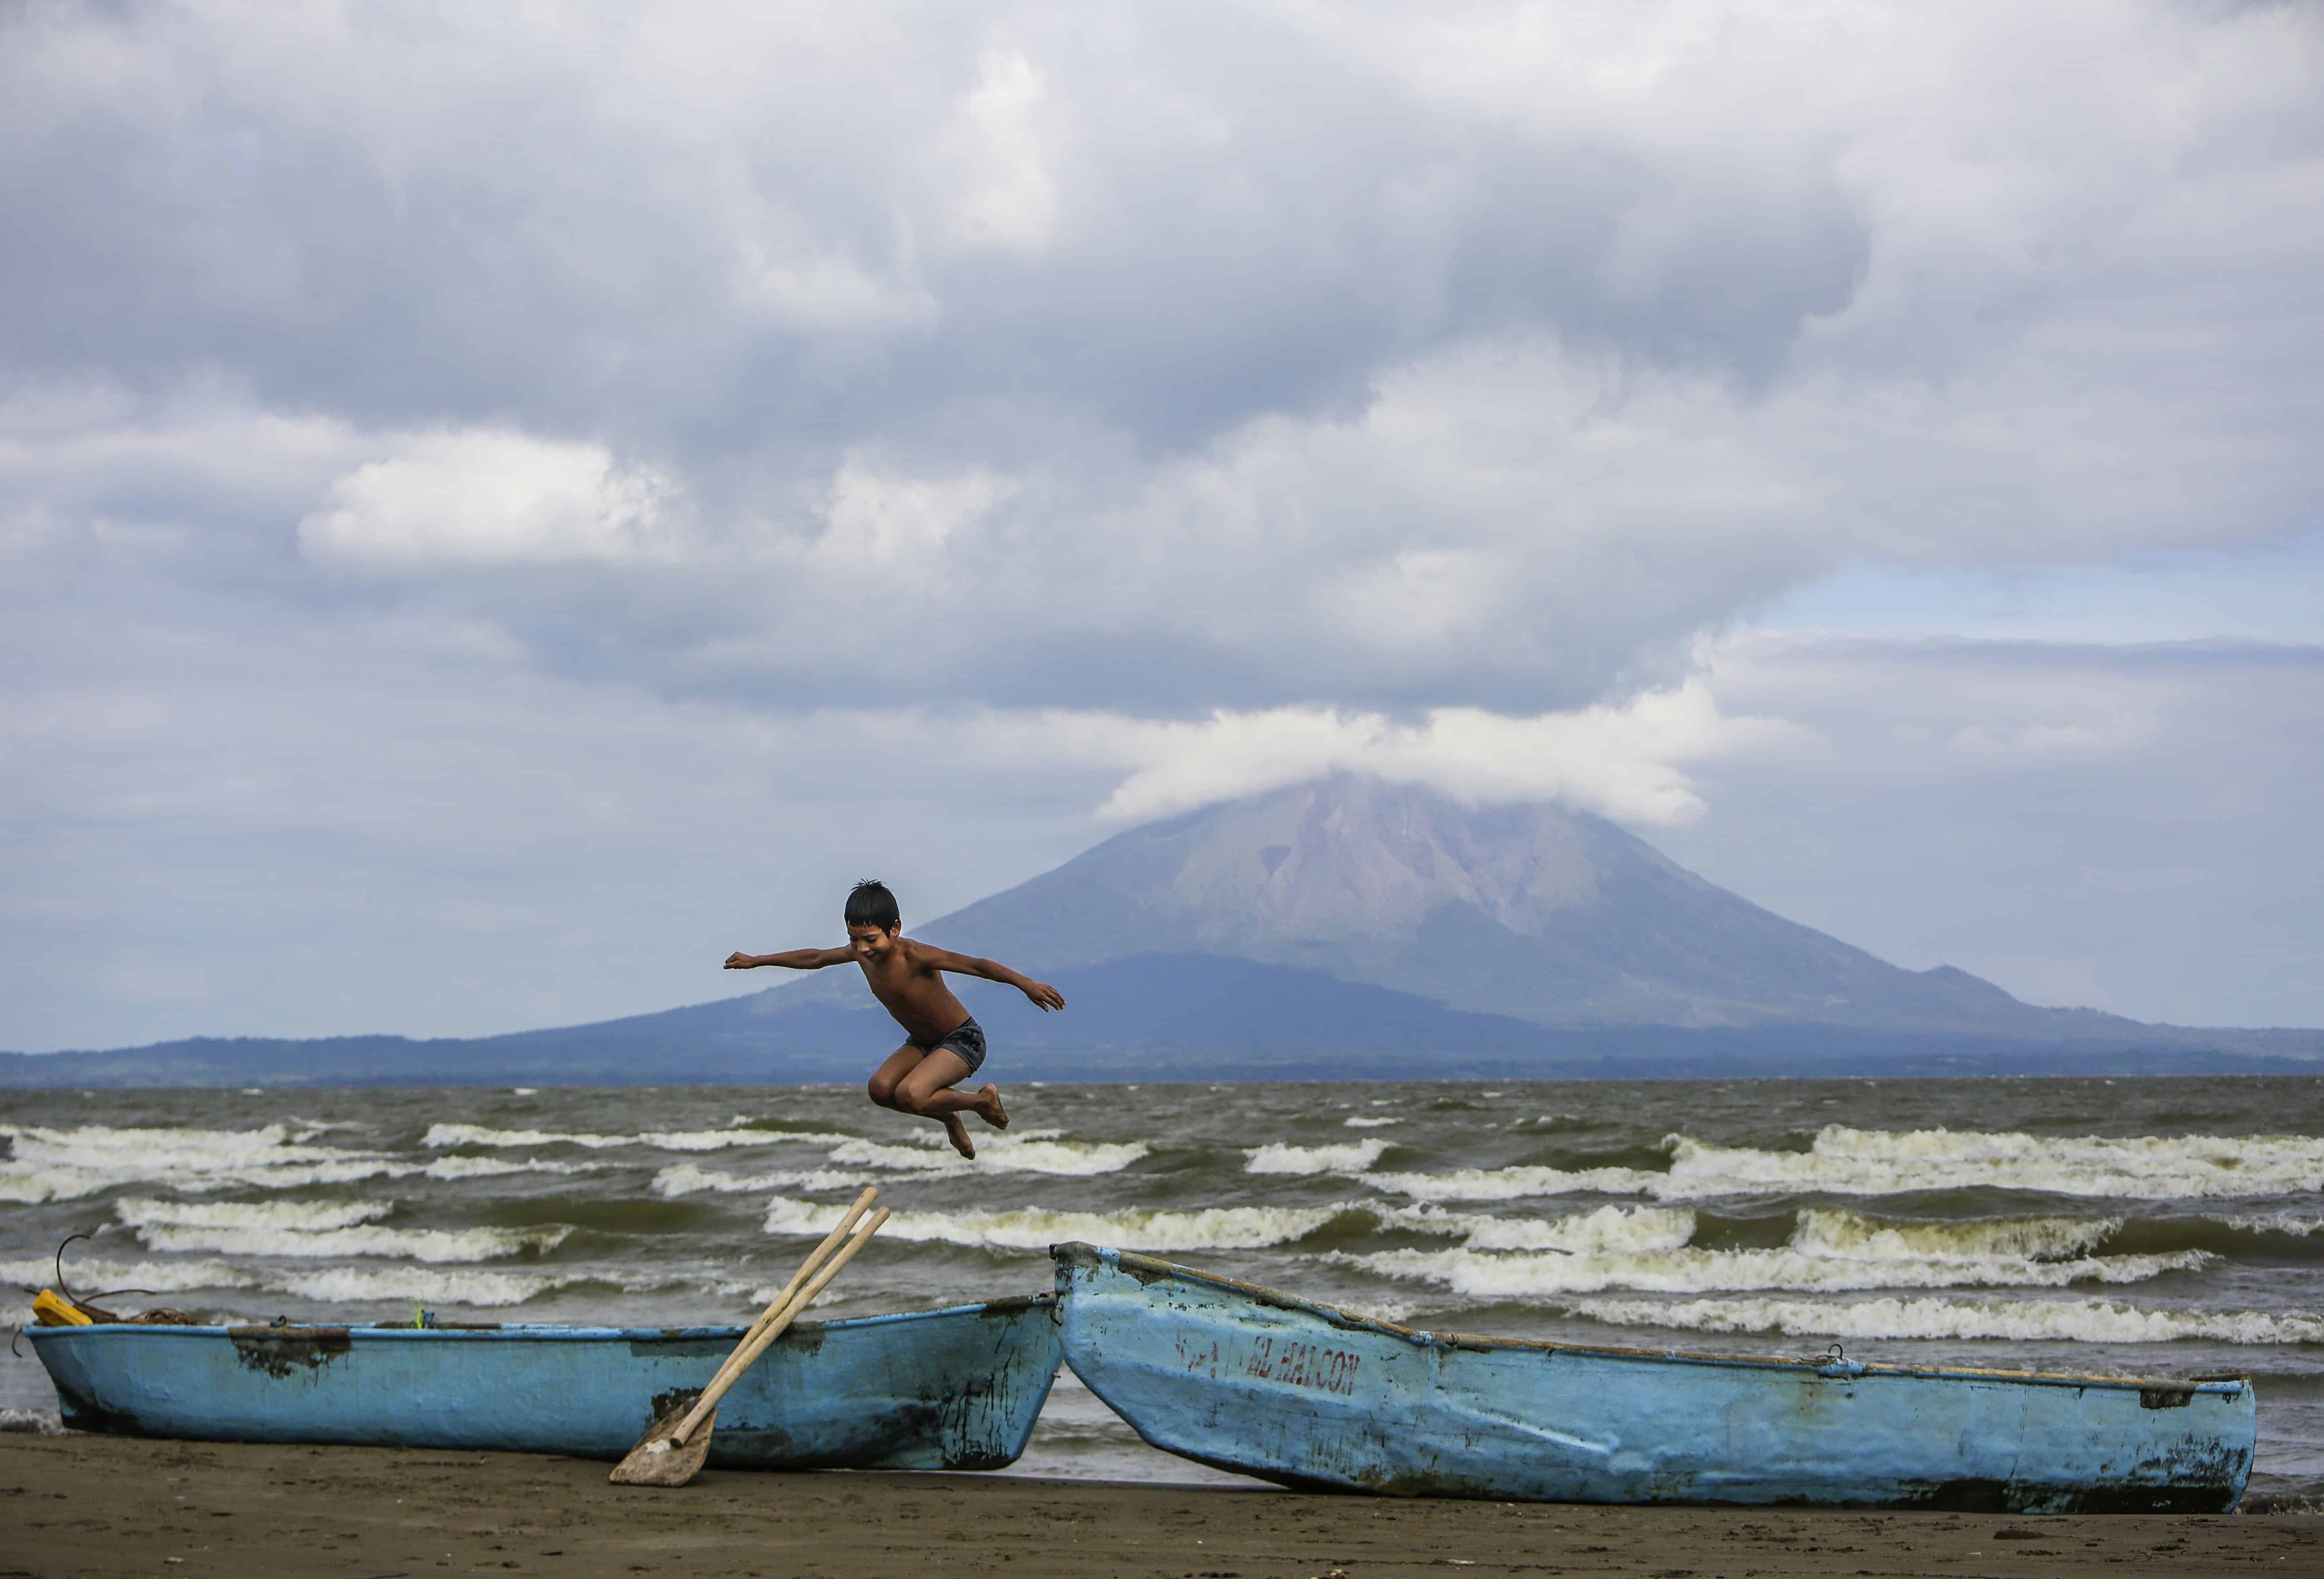 A young boy plays near two fishing boats along the shore of Lake Cocibolca in Rivas, Nicaragua.